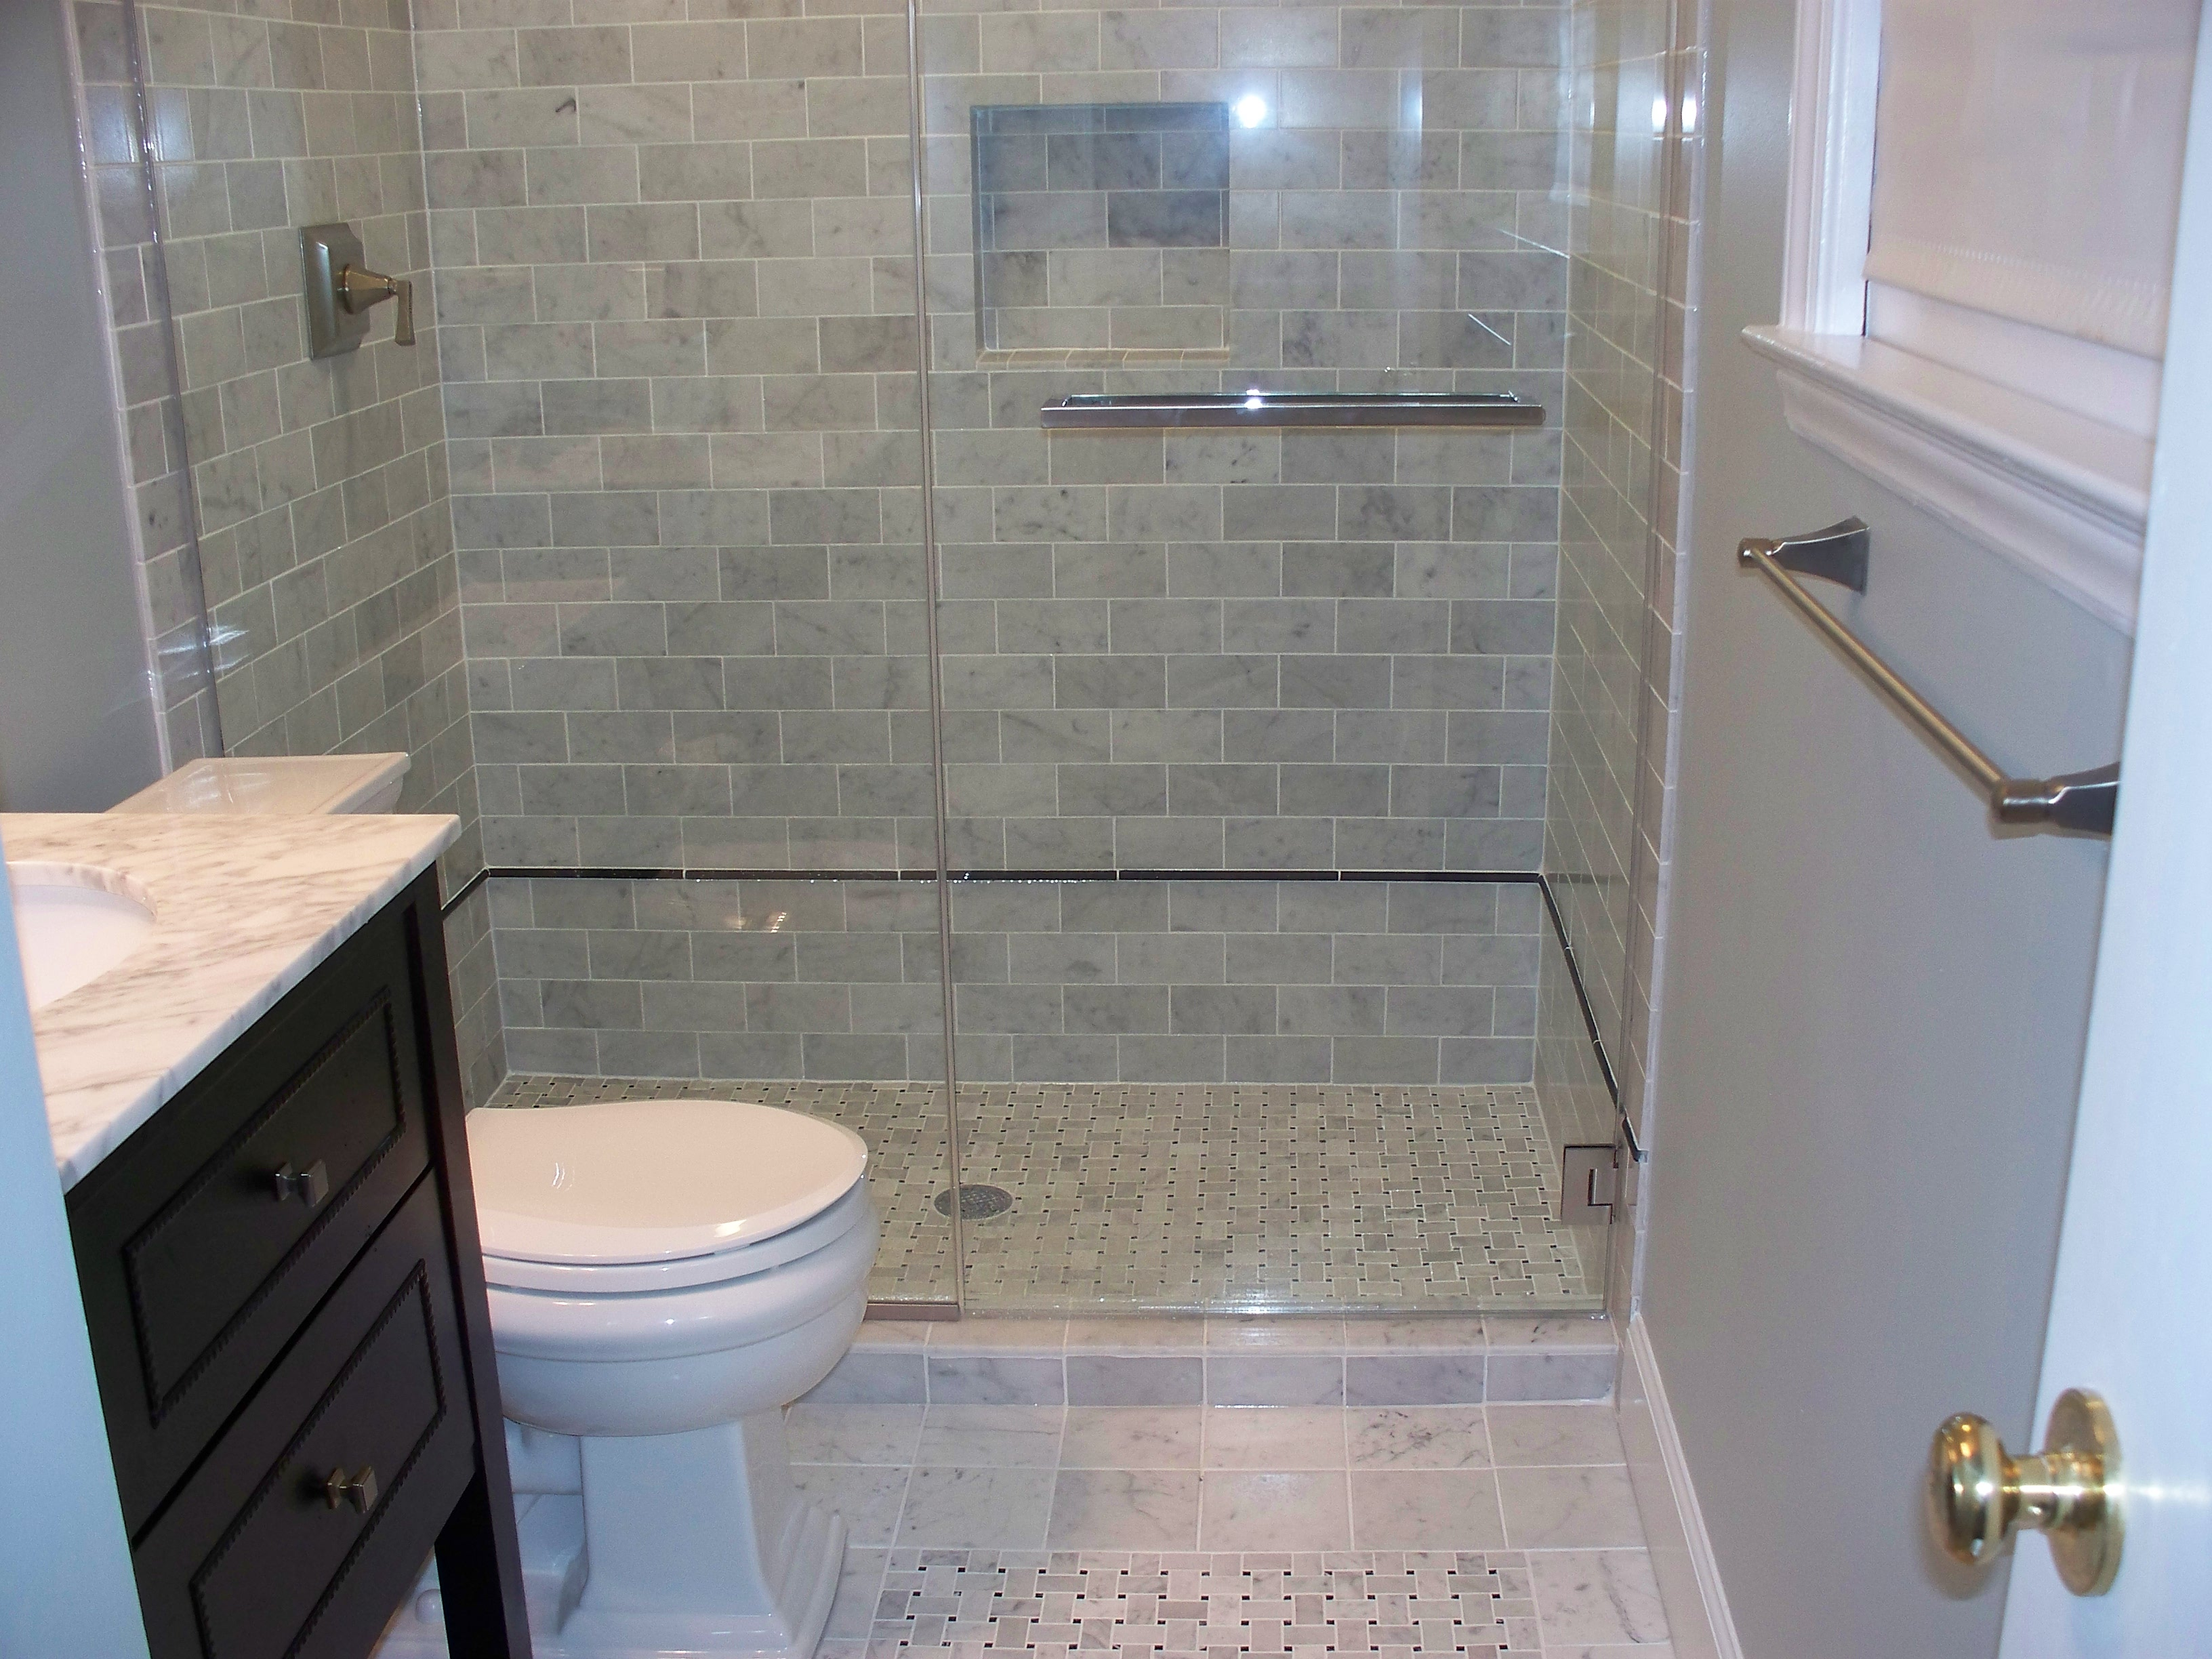 Renovate bathrooms - How To Renovate A Bathroom How Much To Renovate Bathroom